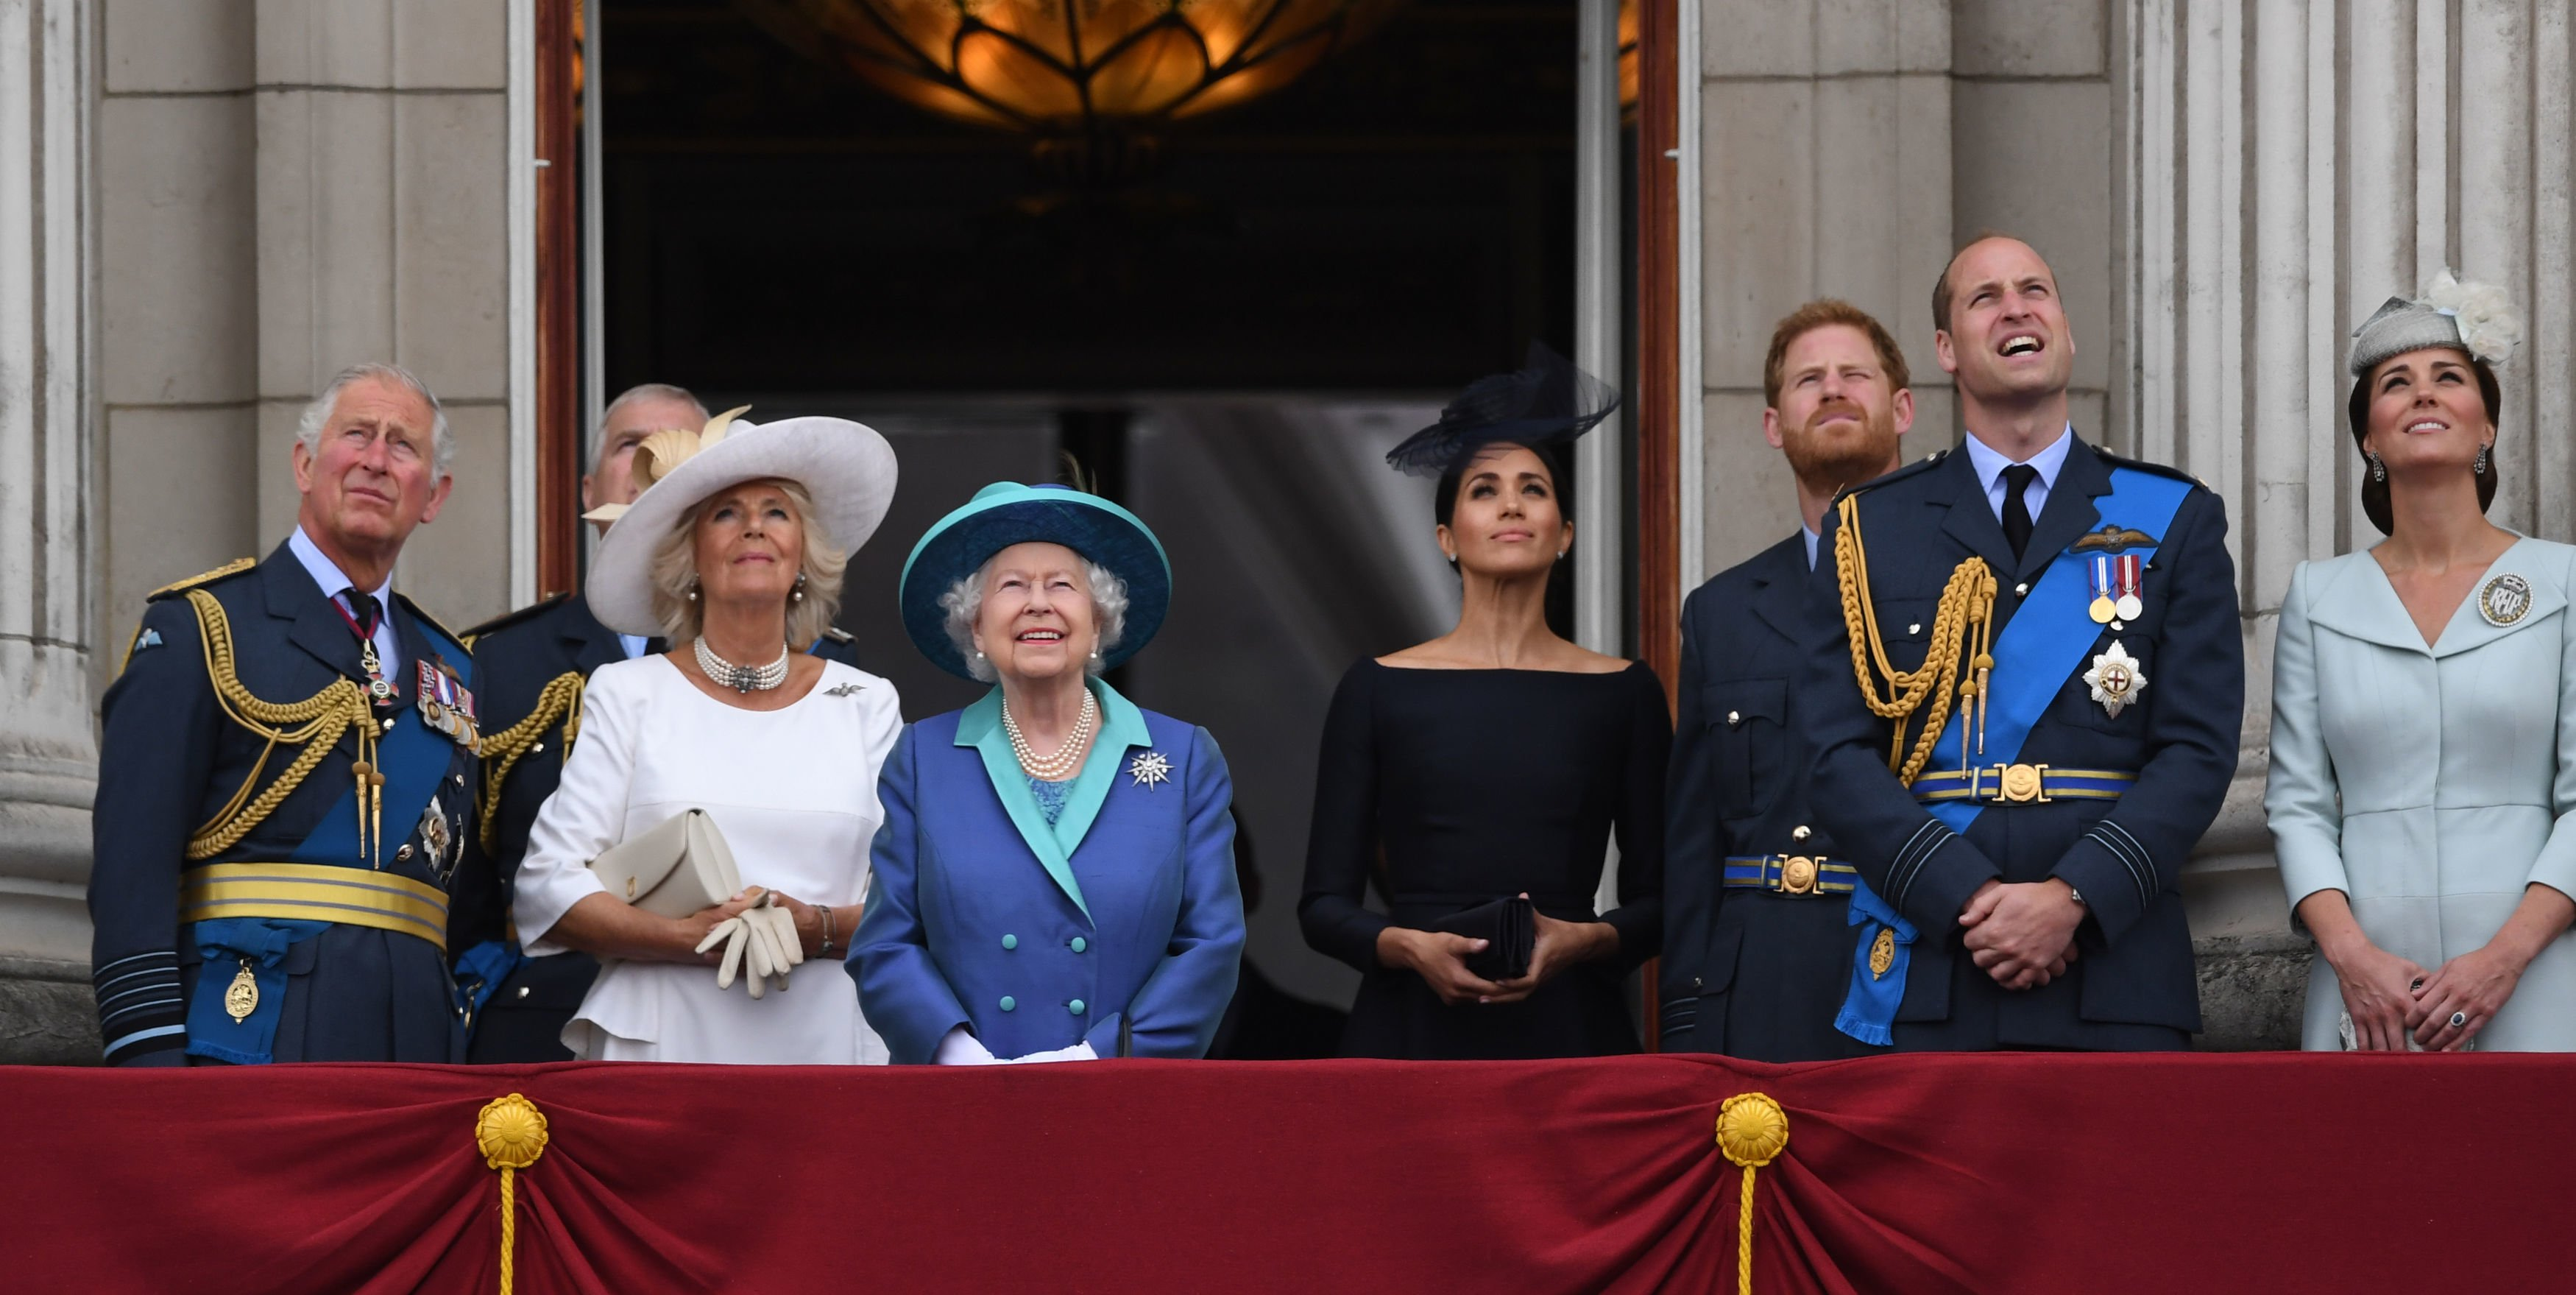 Queen Elizabeth II is scheduled to hold crisis talks with Princes Charles, William and Harry later today. File photo courtesy:Twitter/@Conservatives